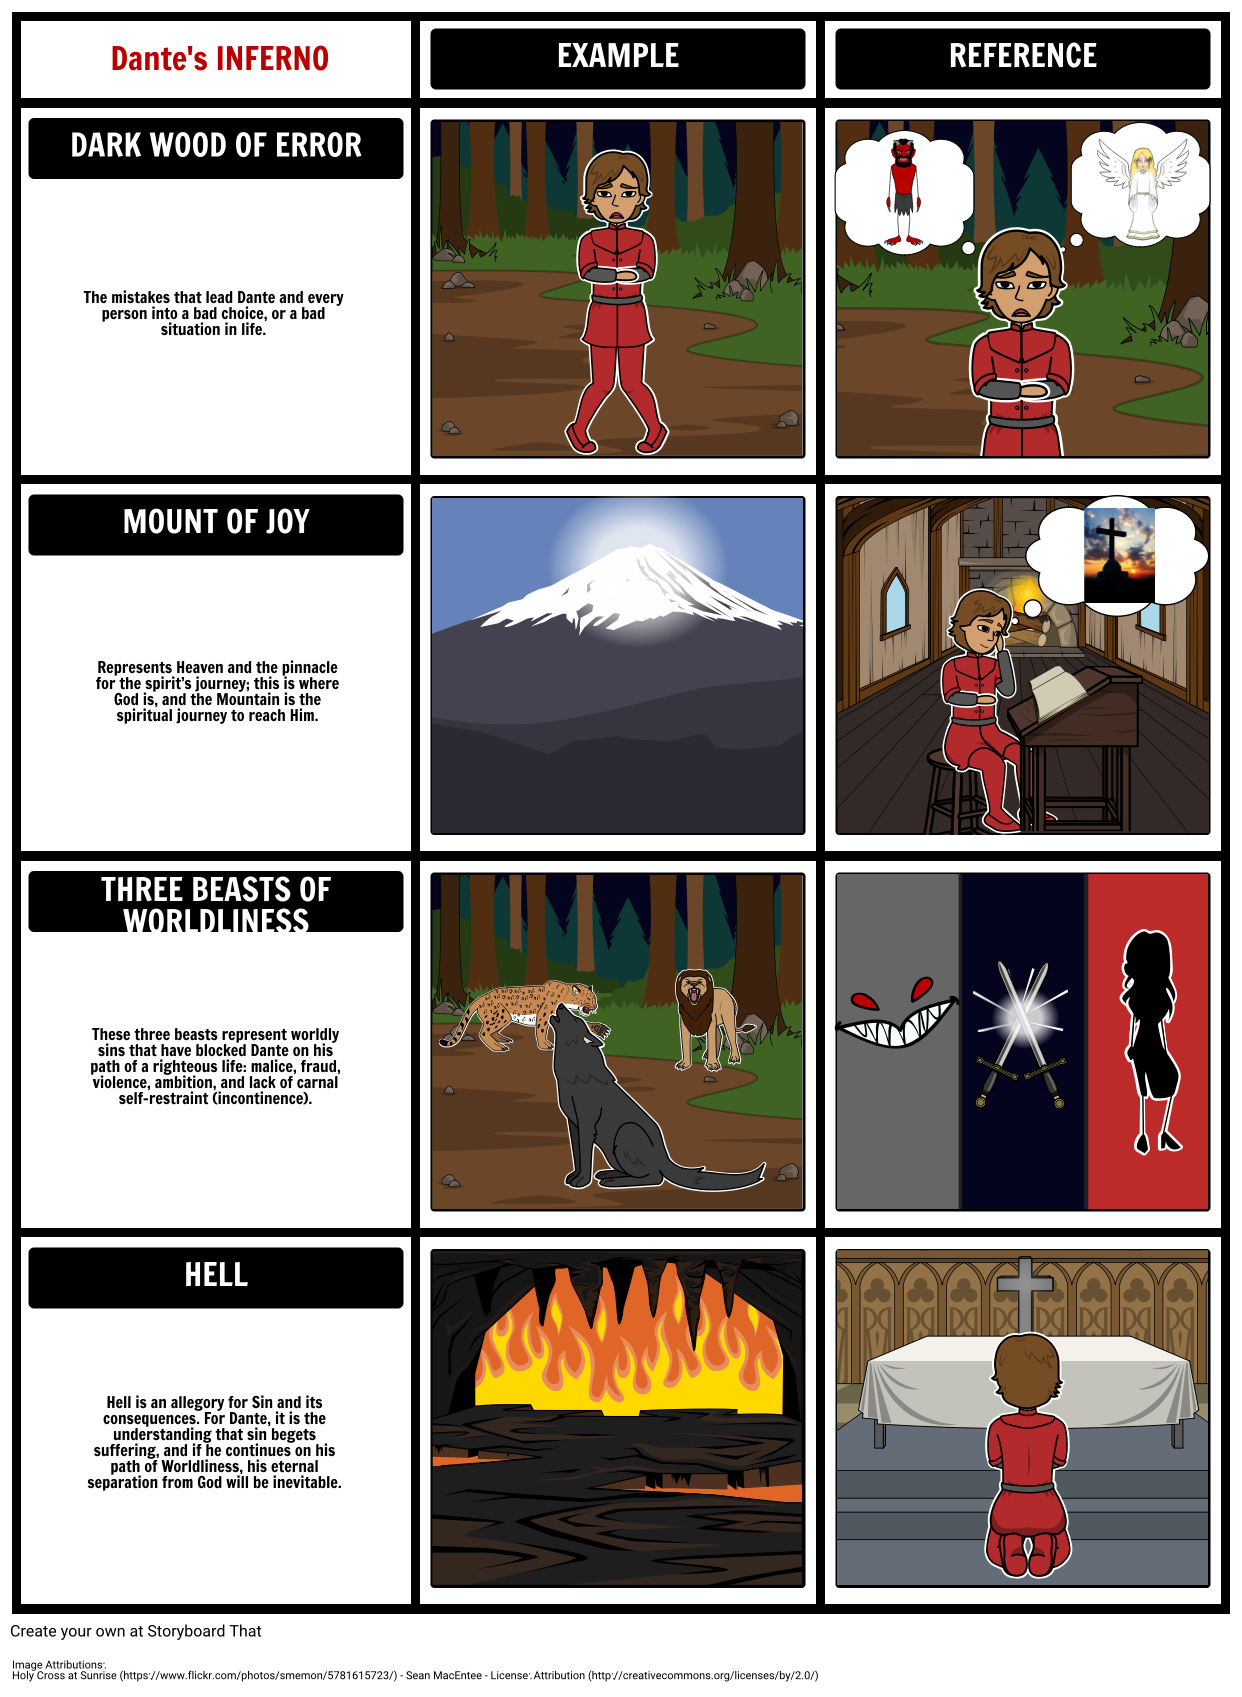 Conflict clipart rising action. Dante s inferno book